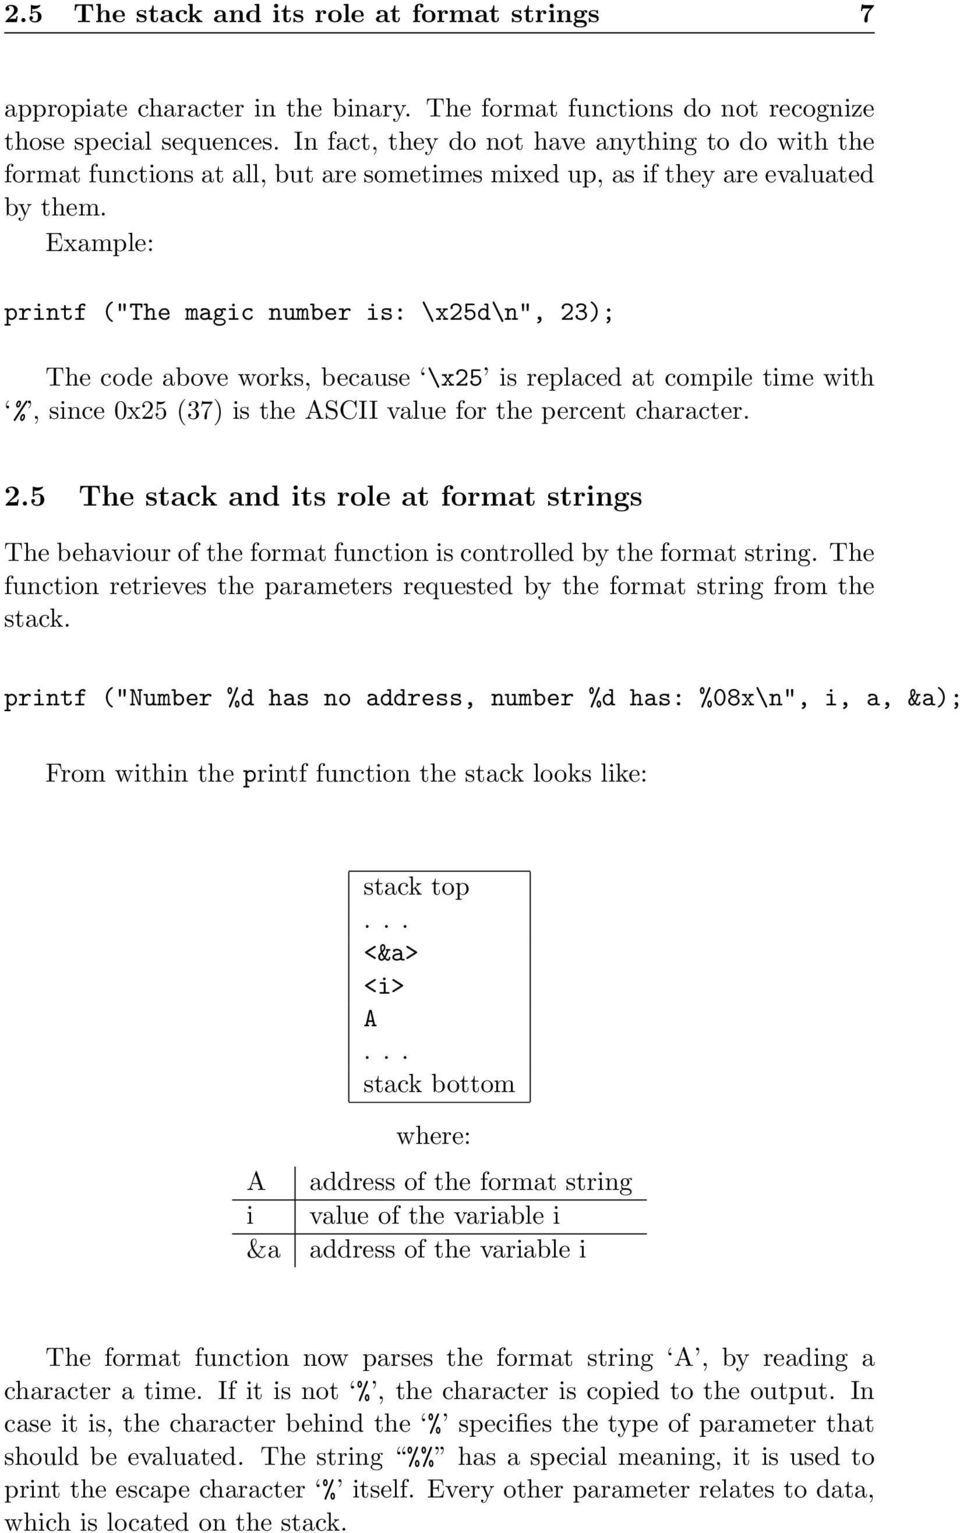 "Example: printf (""The magic number is: \x25d\n"", 23); The code above works, because \x25 is replaced at compile time with %, since 0x25 (37) is the ASCII value for the percent character. 2.5 The stack and its role at format strings The behaviour of the format function is controlled by the format string."